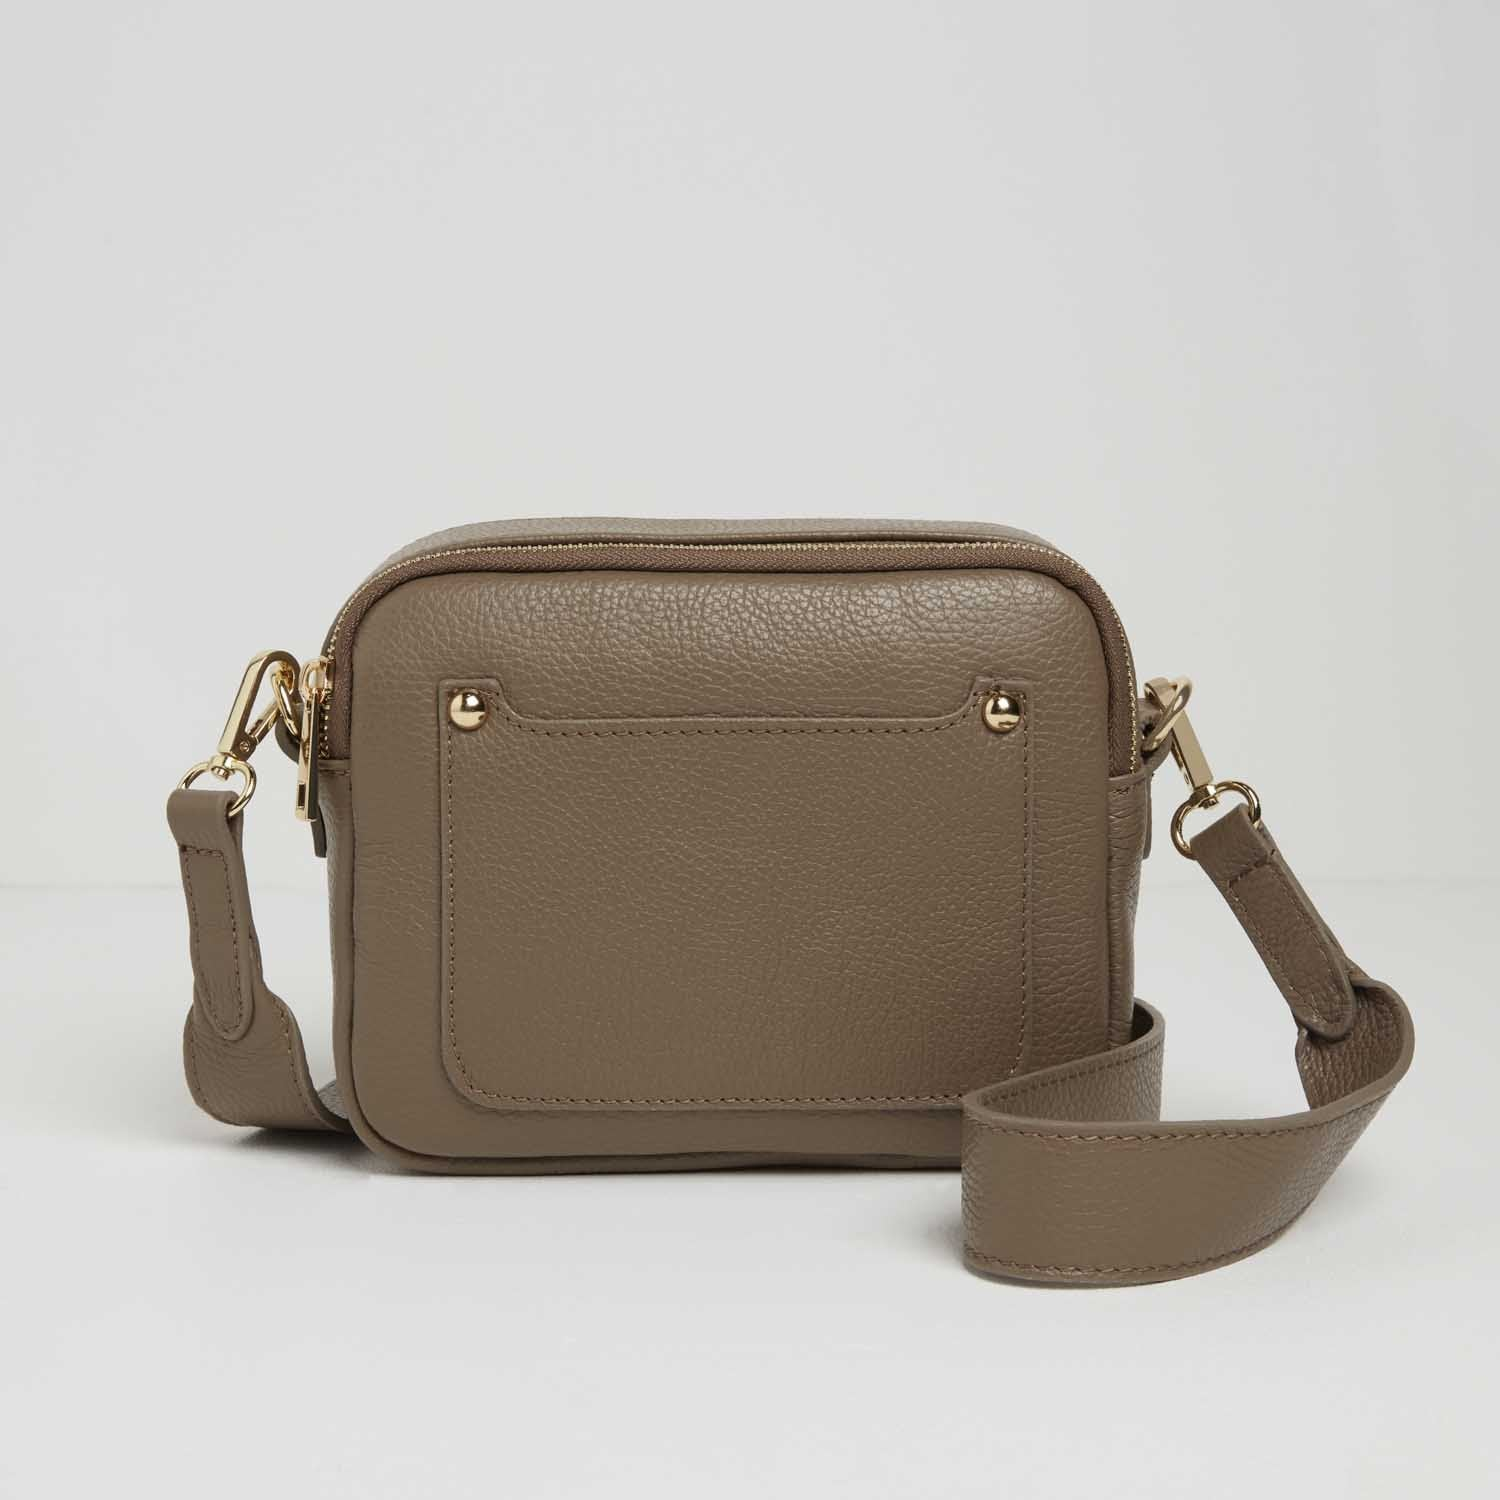 Sienna Crossbody Bag in Dark Taupe with Pastel Strap